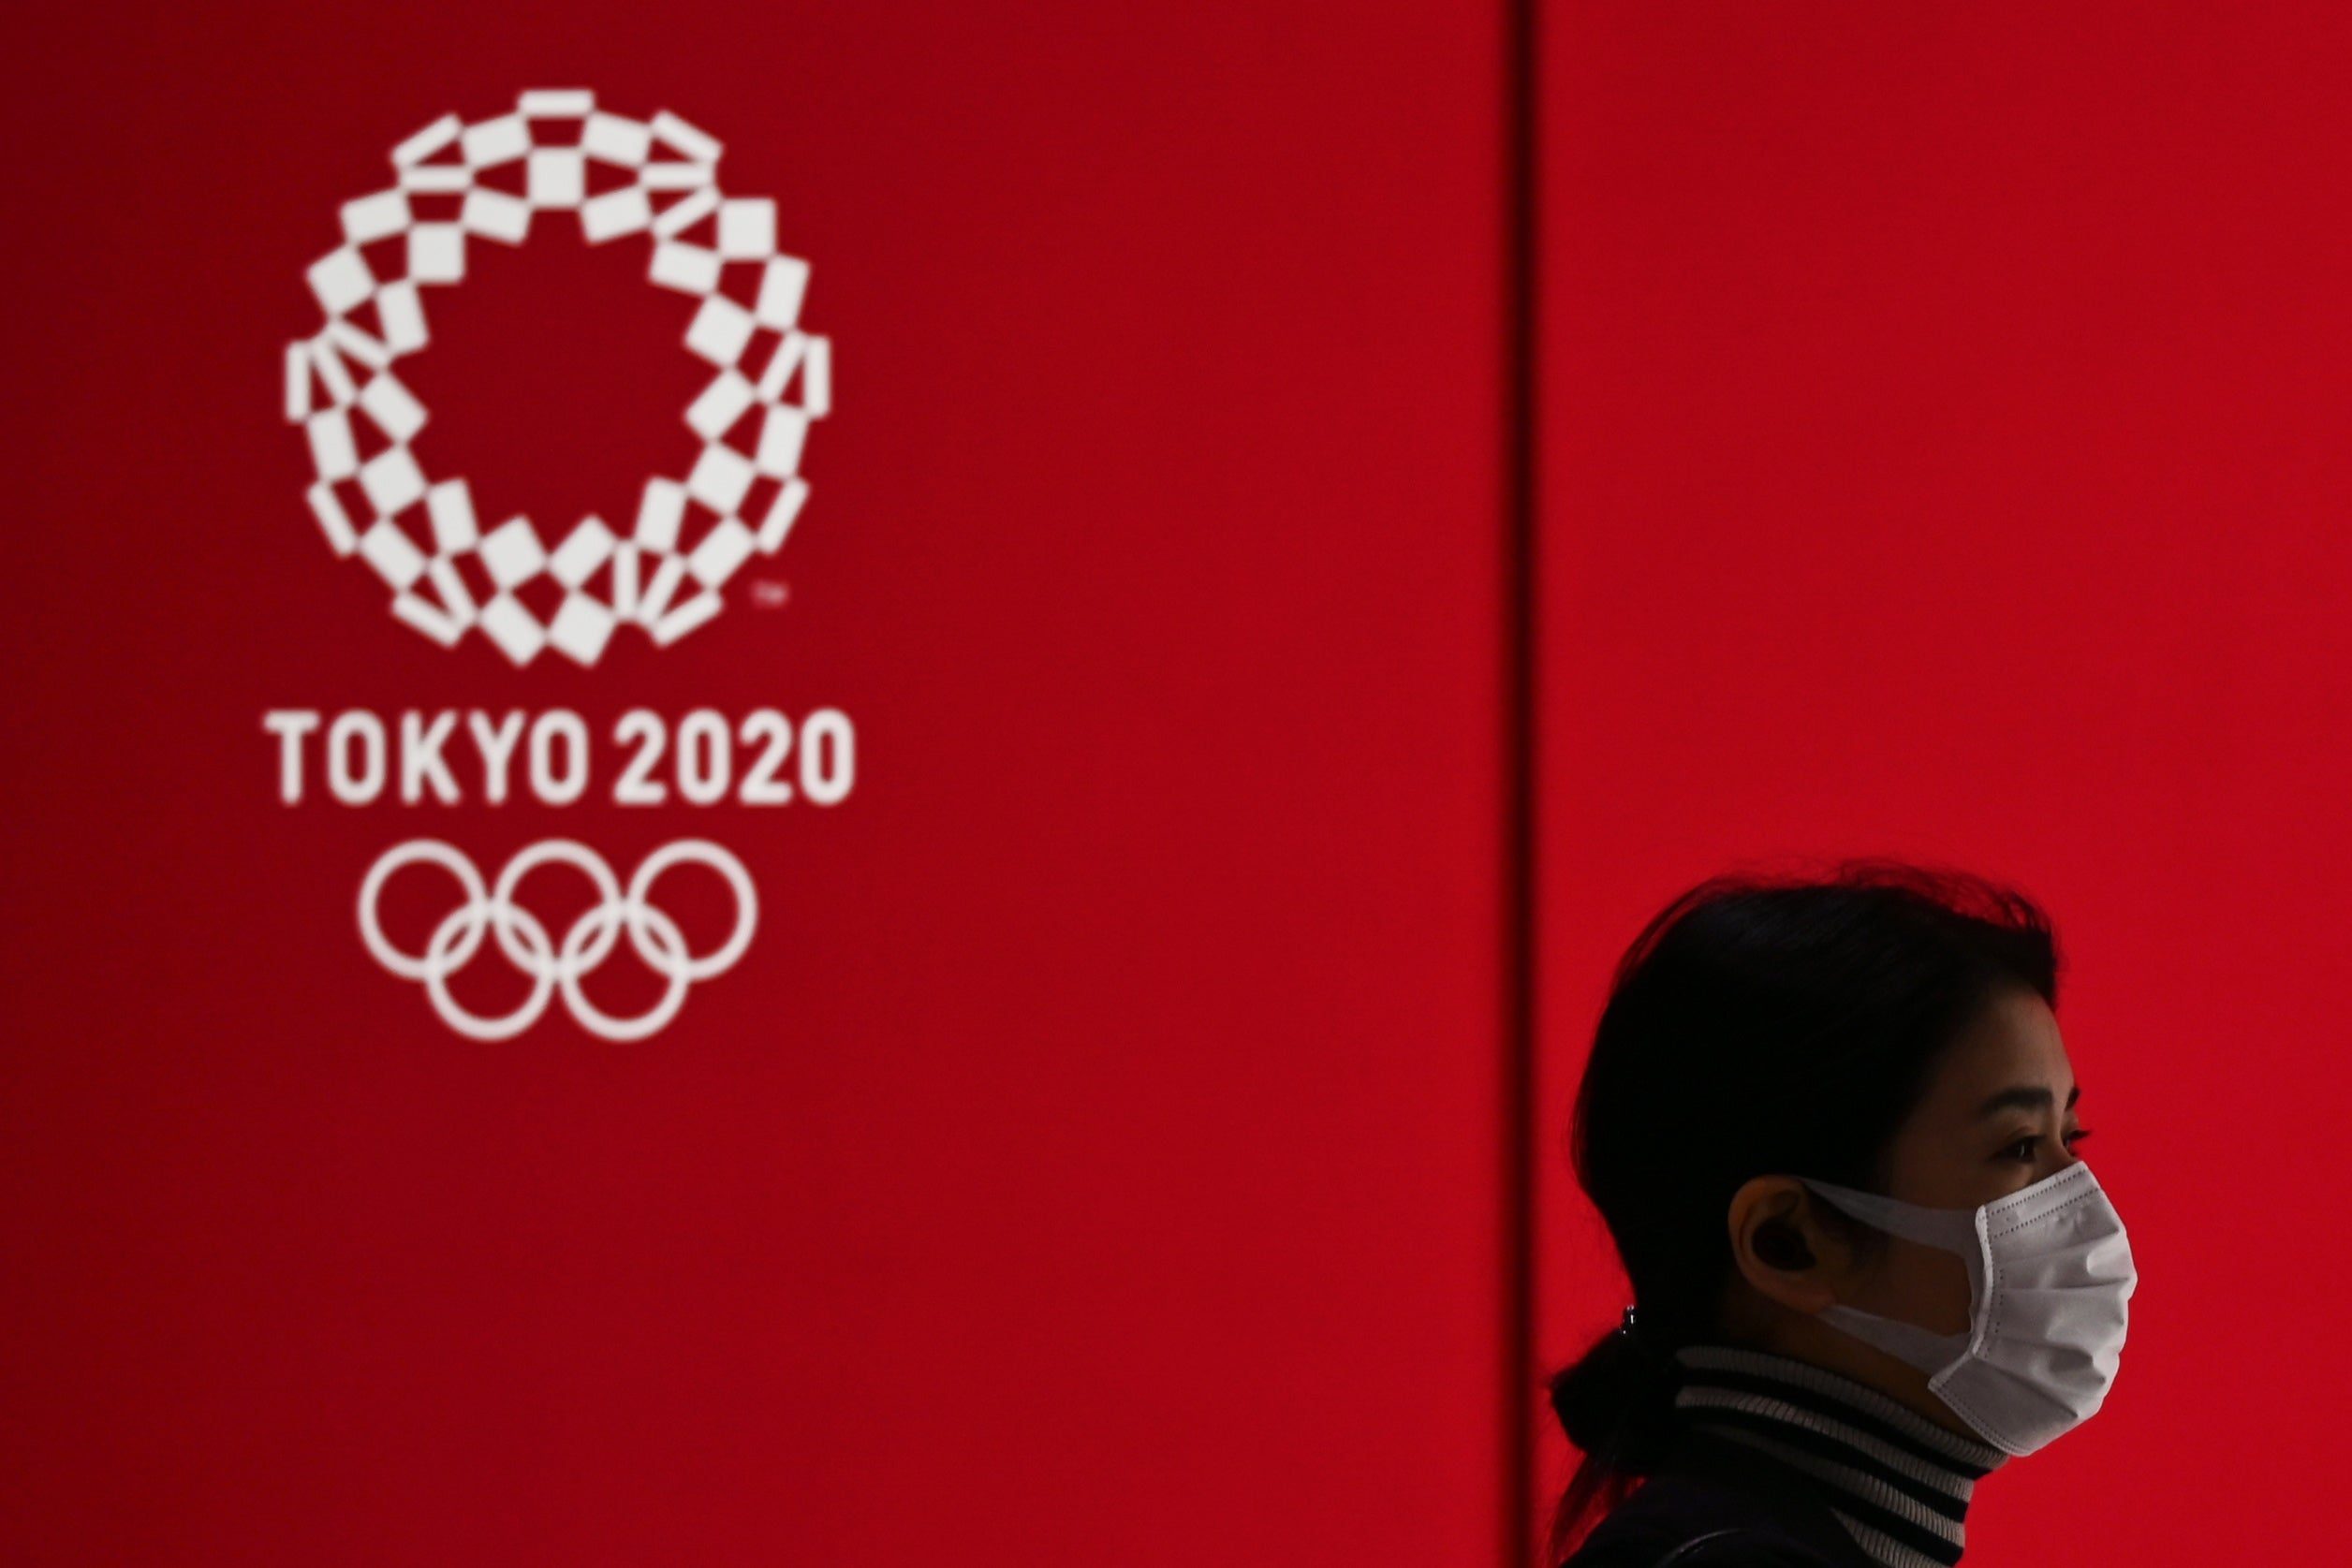 Crisis is engulfing the postponed Tokyo 2020 Games – but does the world still need the Olympics?